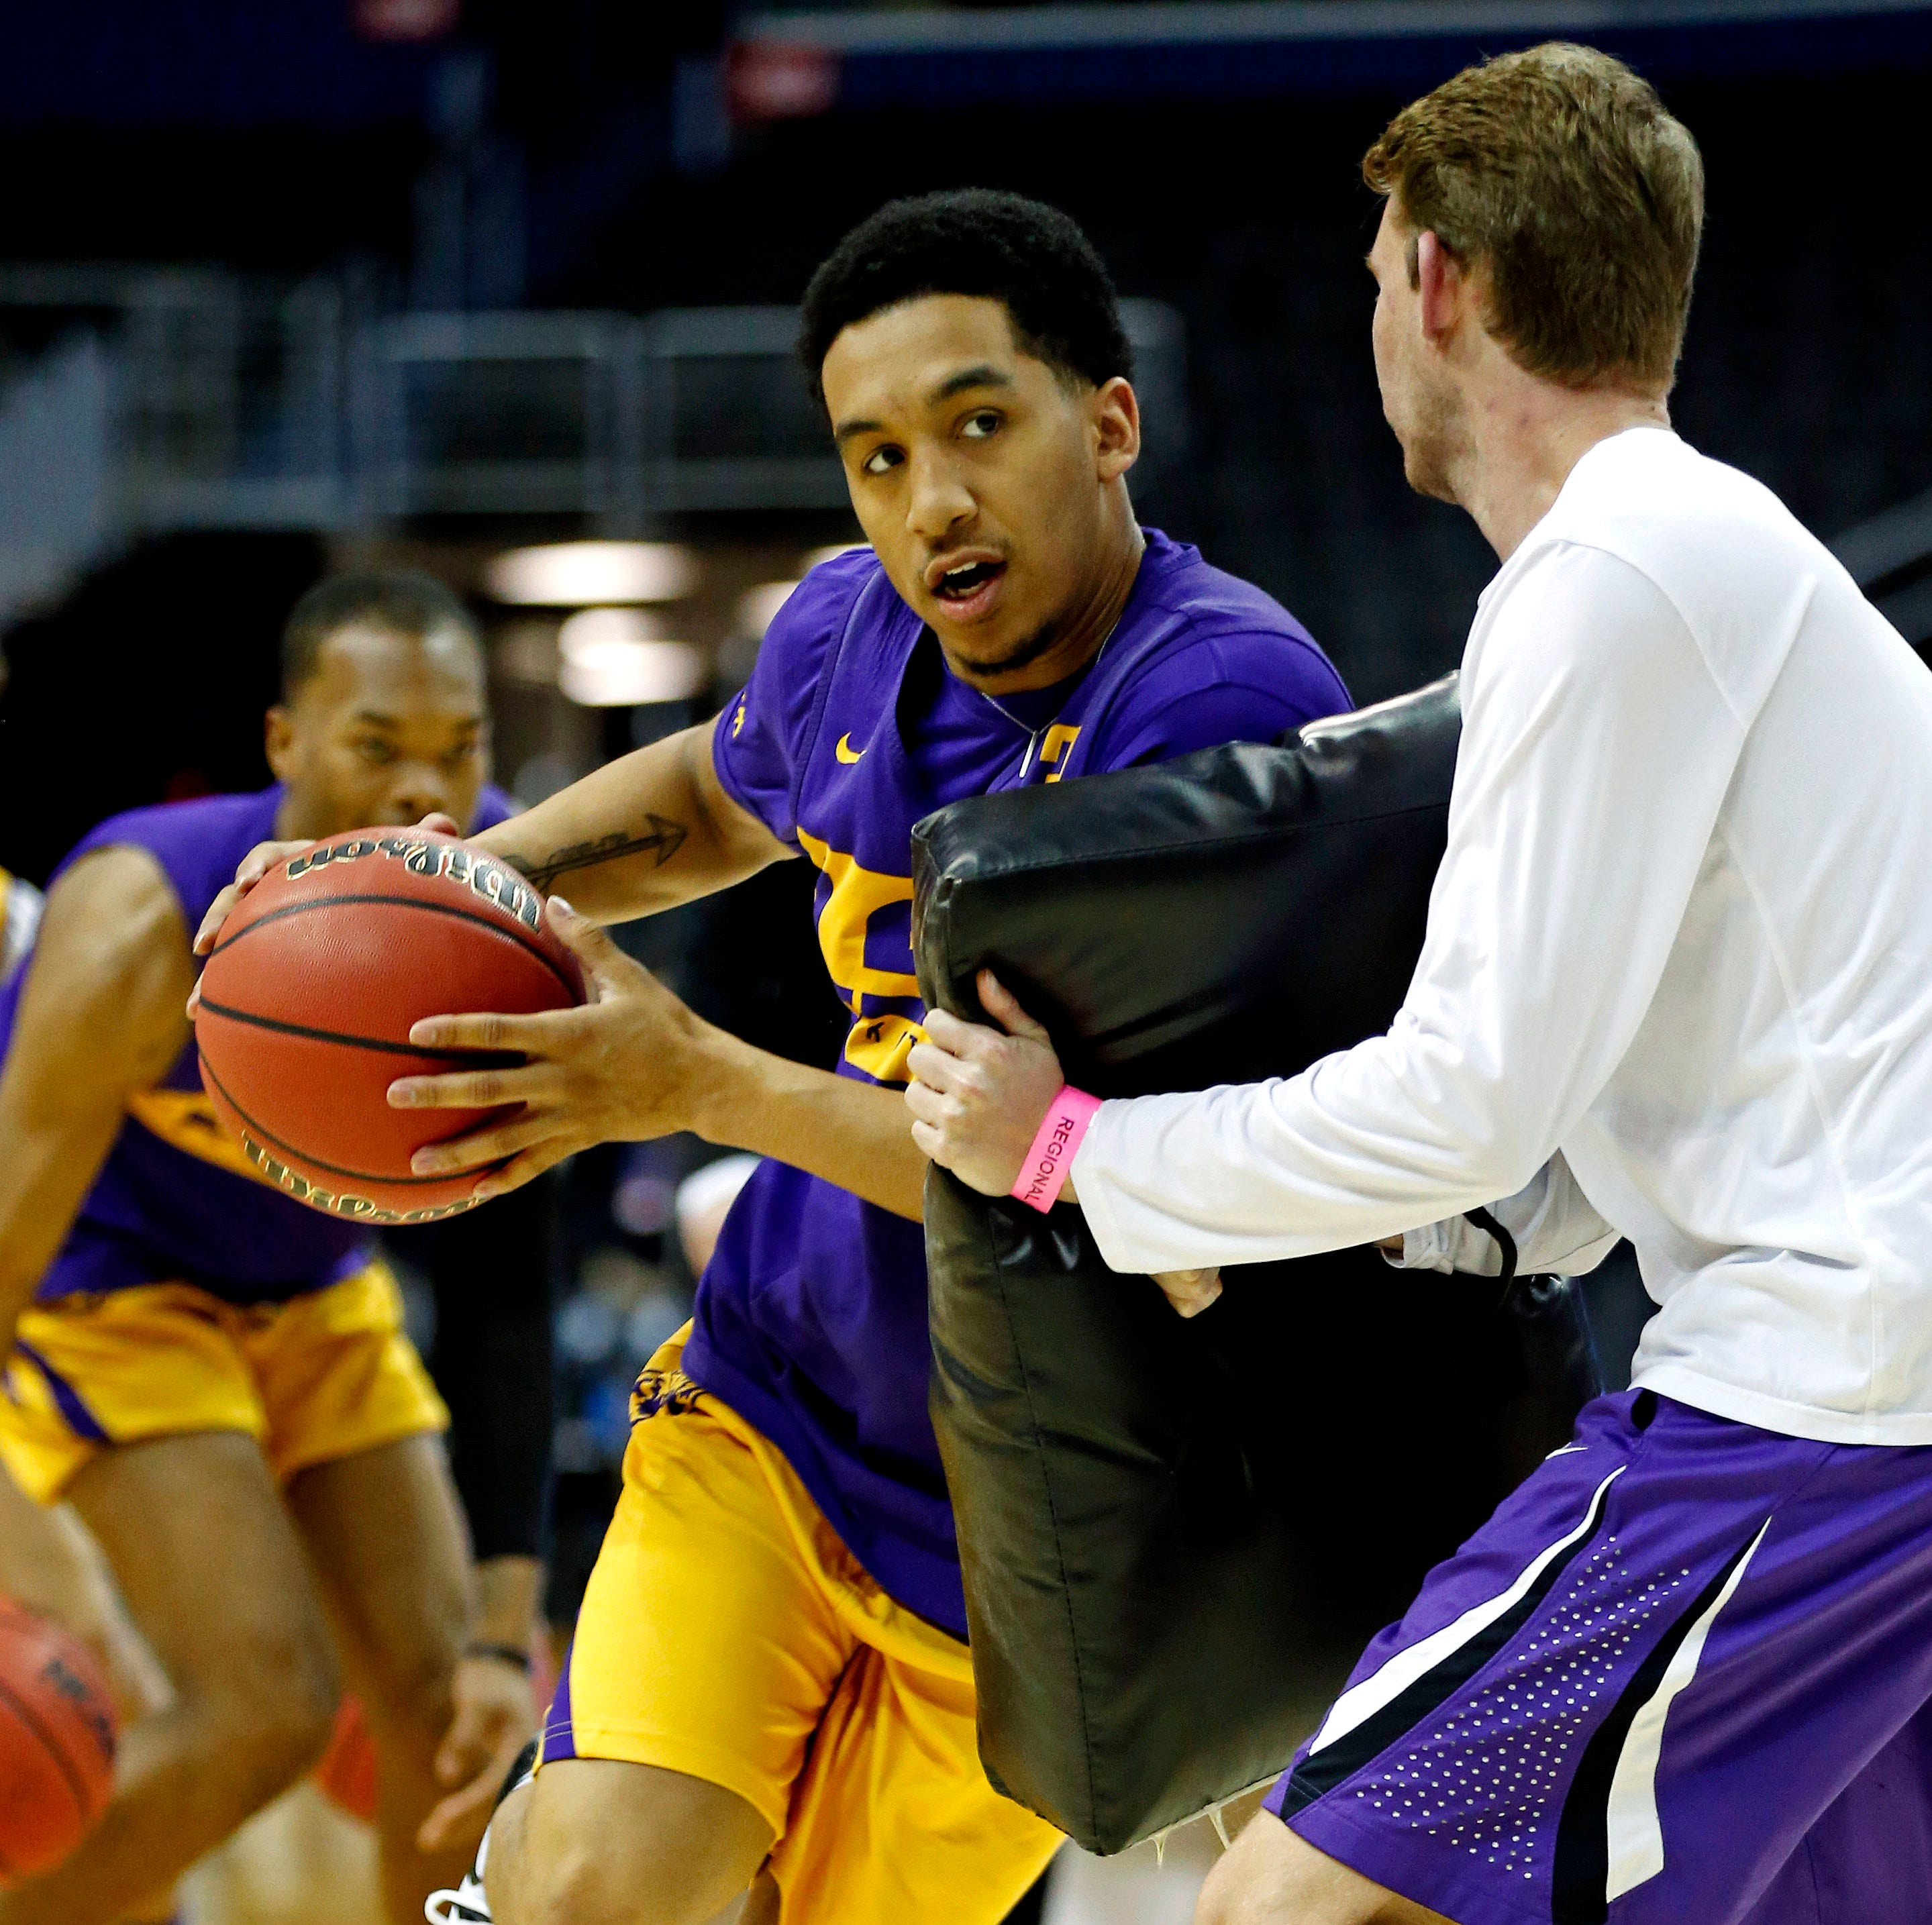 LSU vs. Mich. St.: Welcome to No-Zone Zone — LSU struggles against it, but Izzo hates it